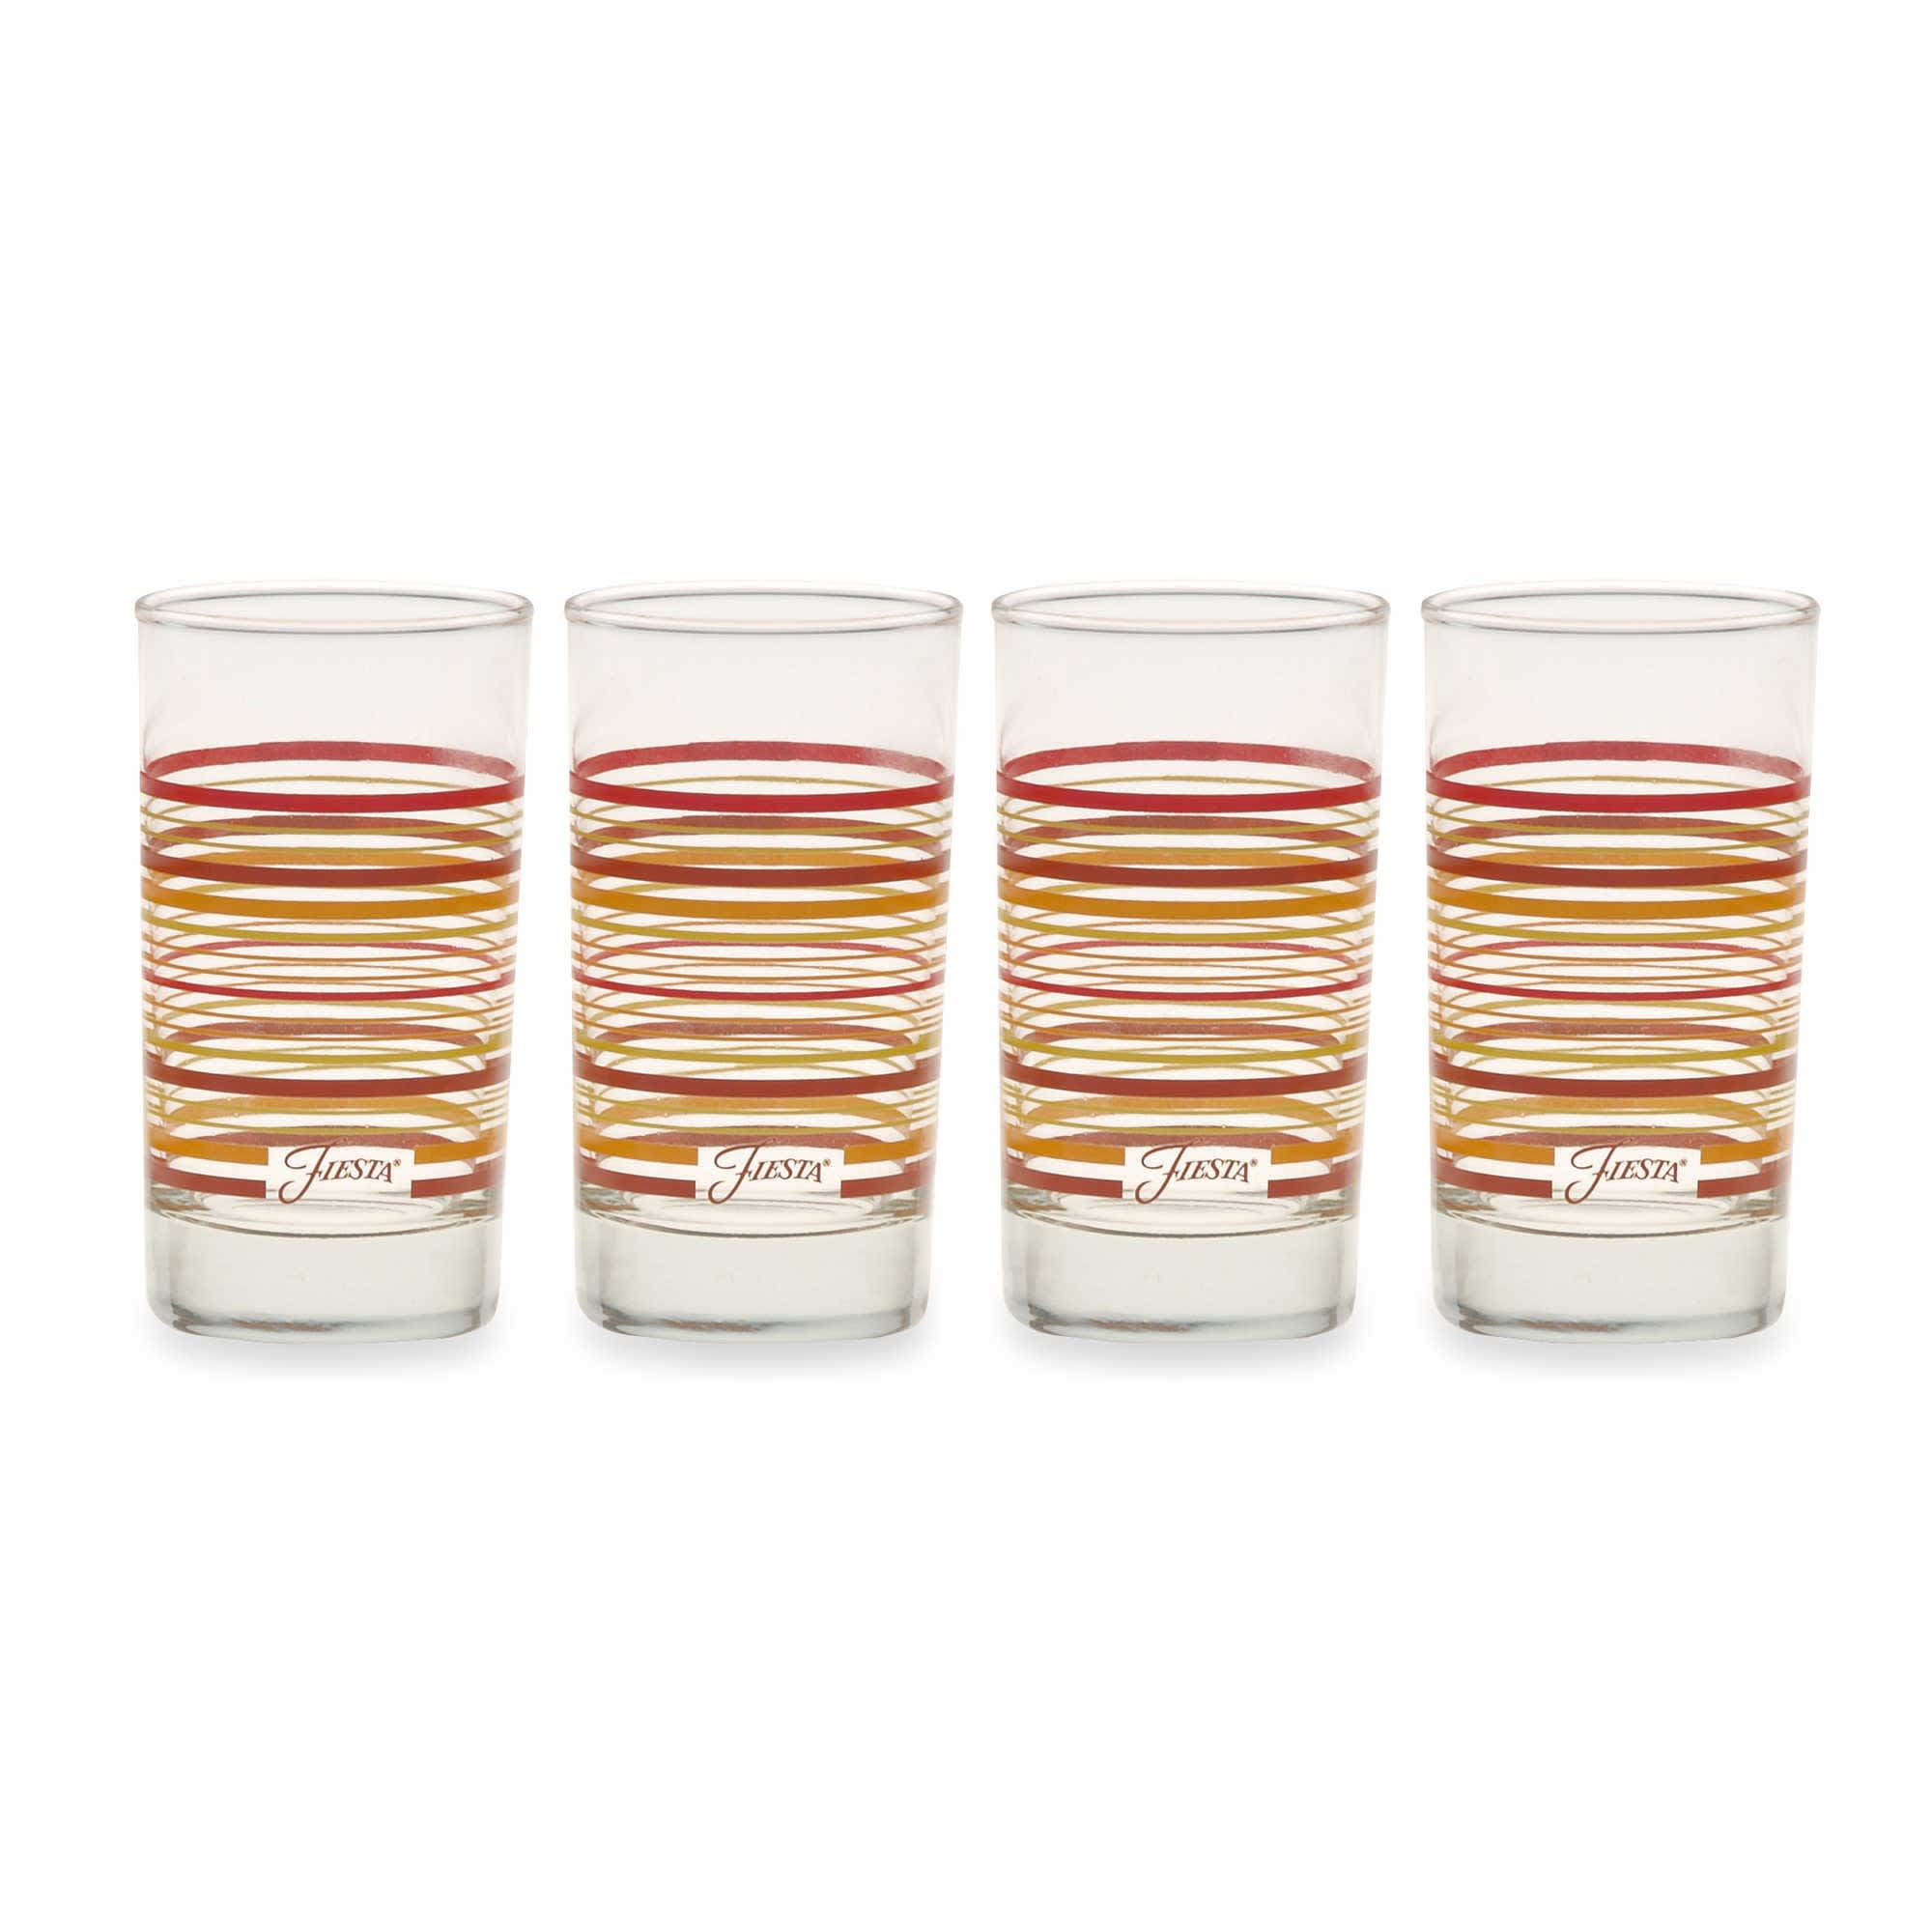 15 Patterned Glasses to Perk up Your Dinner Table: gallery image 13